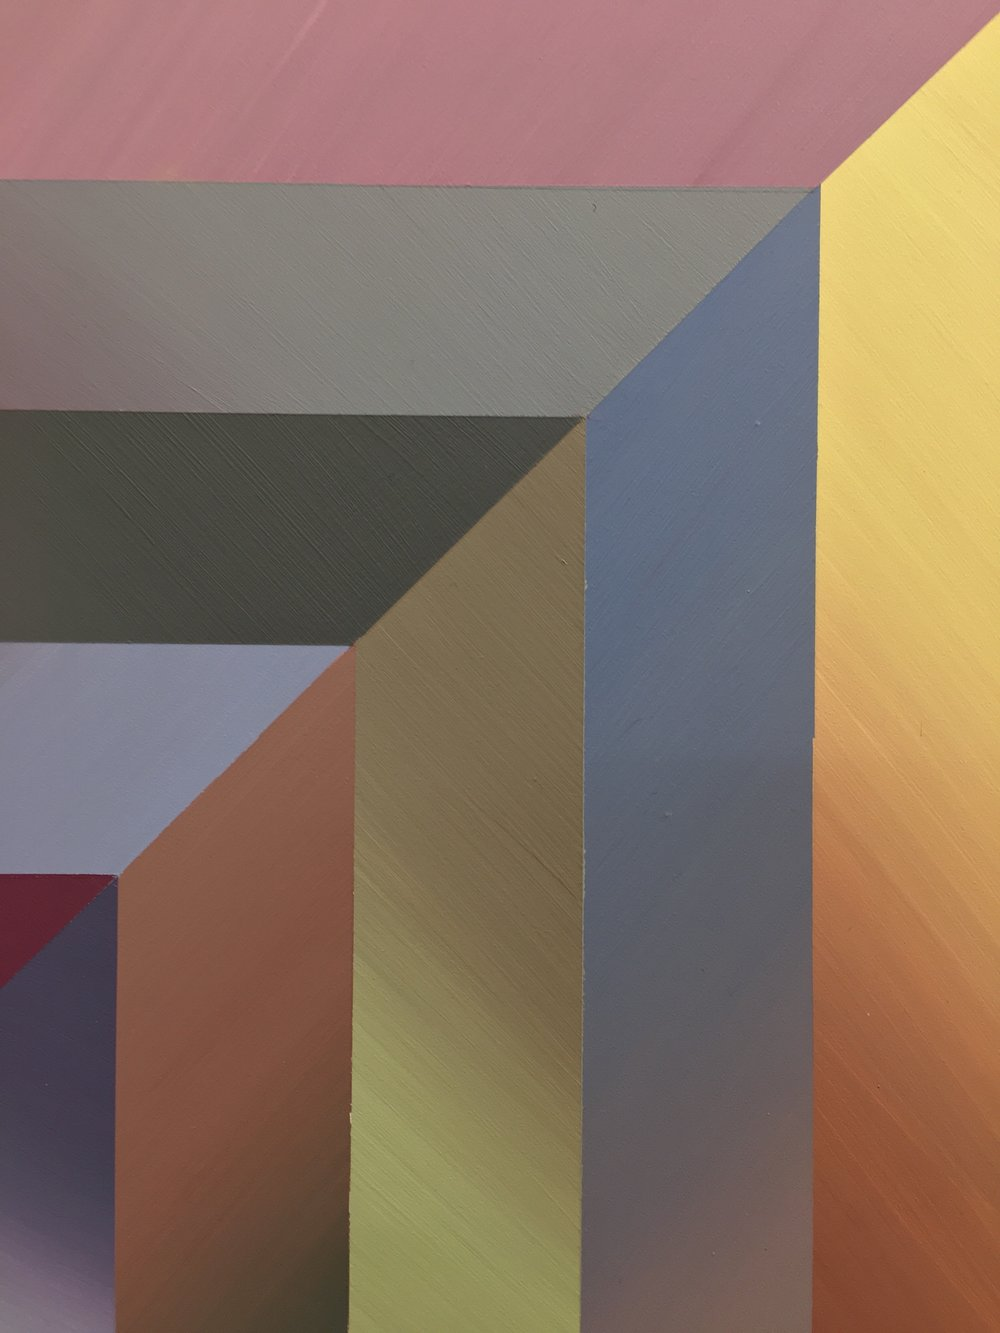 Beyond the Horizon II  (detail), 2018, acrylic and flashe on panel, 18 x 18 inches, $2500.